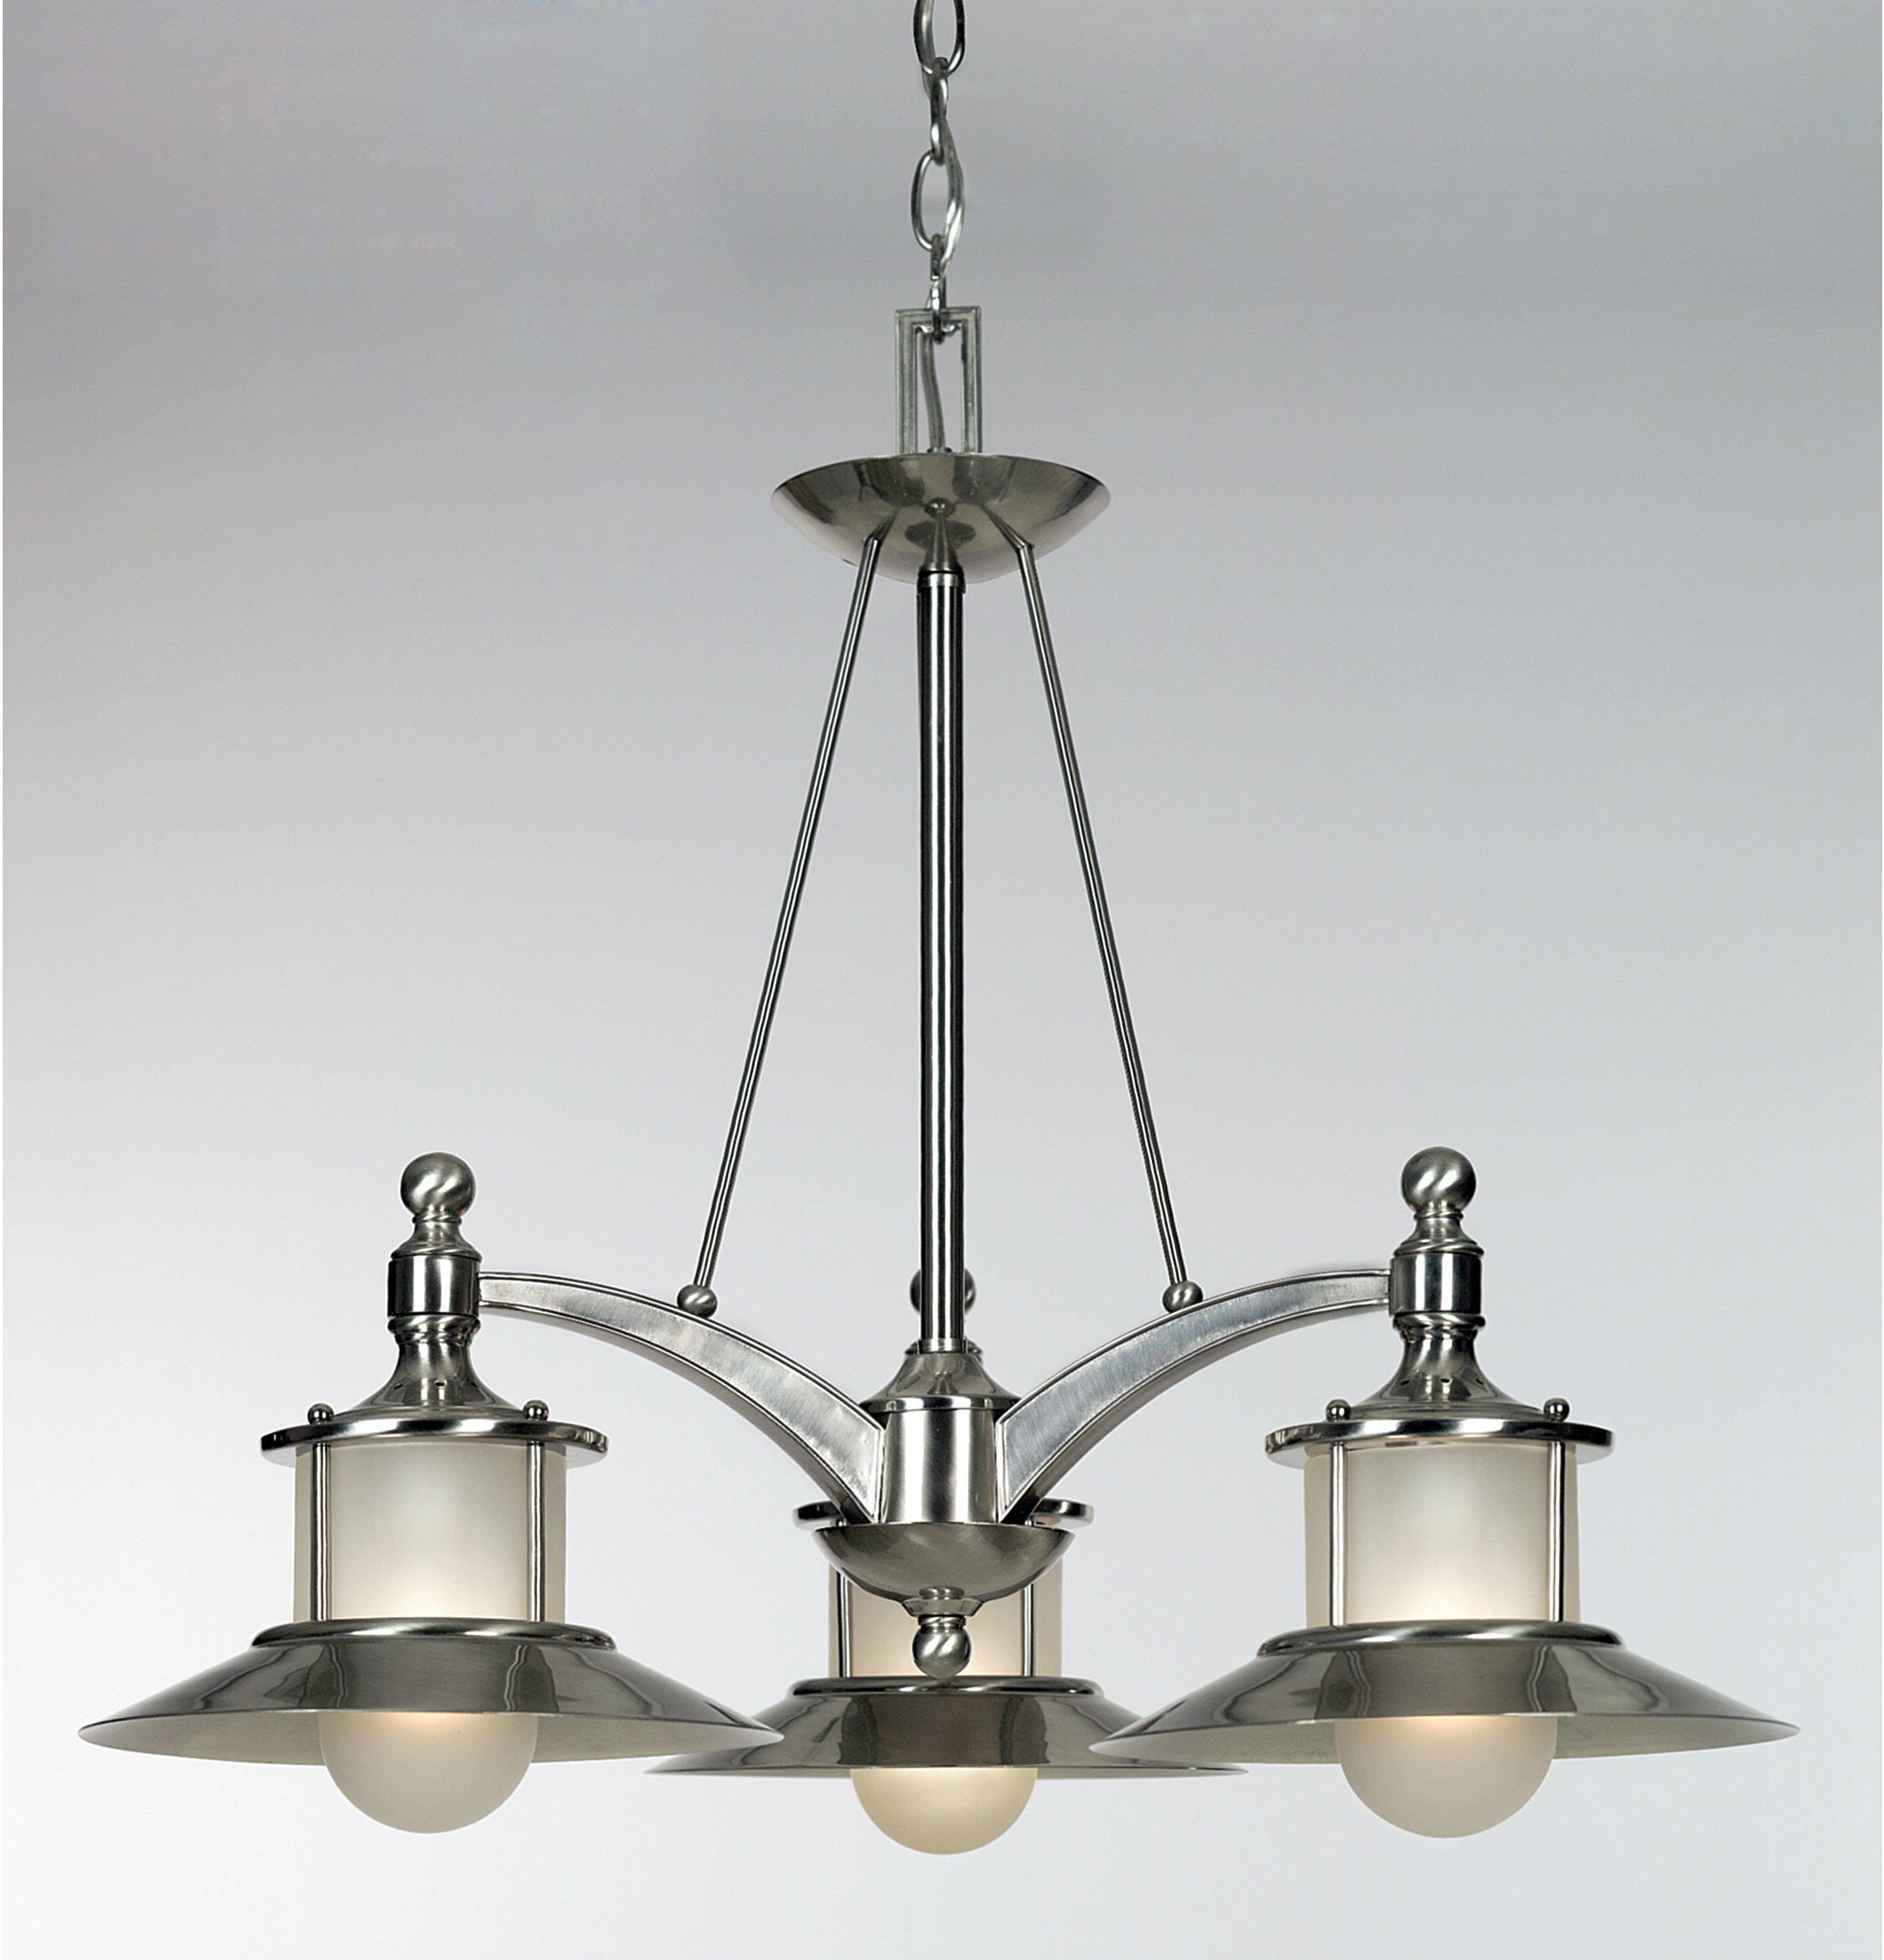 Quoizel Lamps And Lighting New England Dinette Chandelier